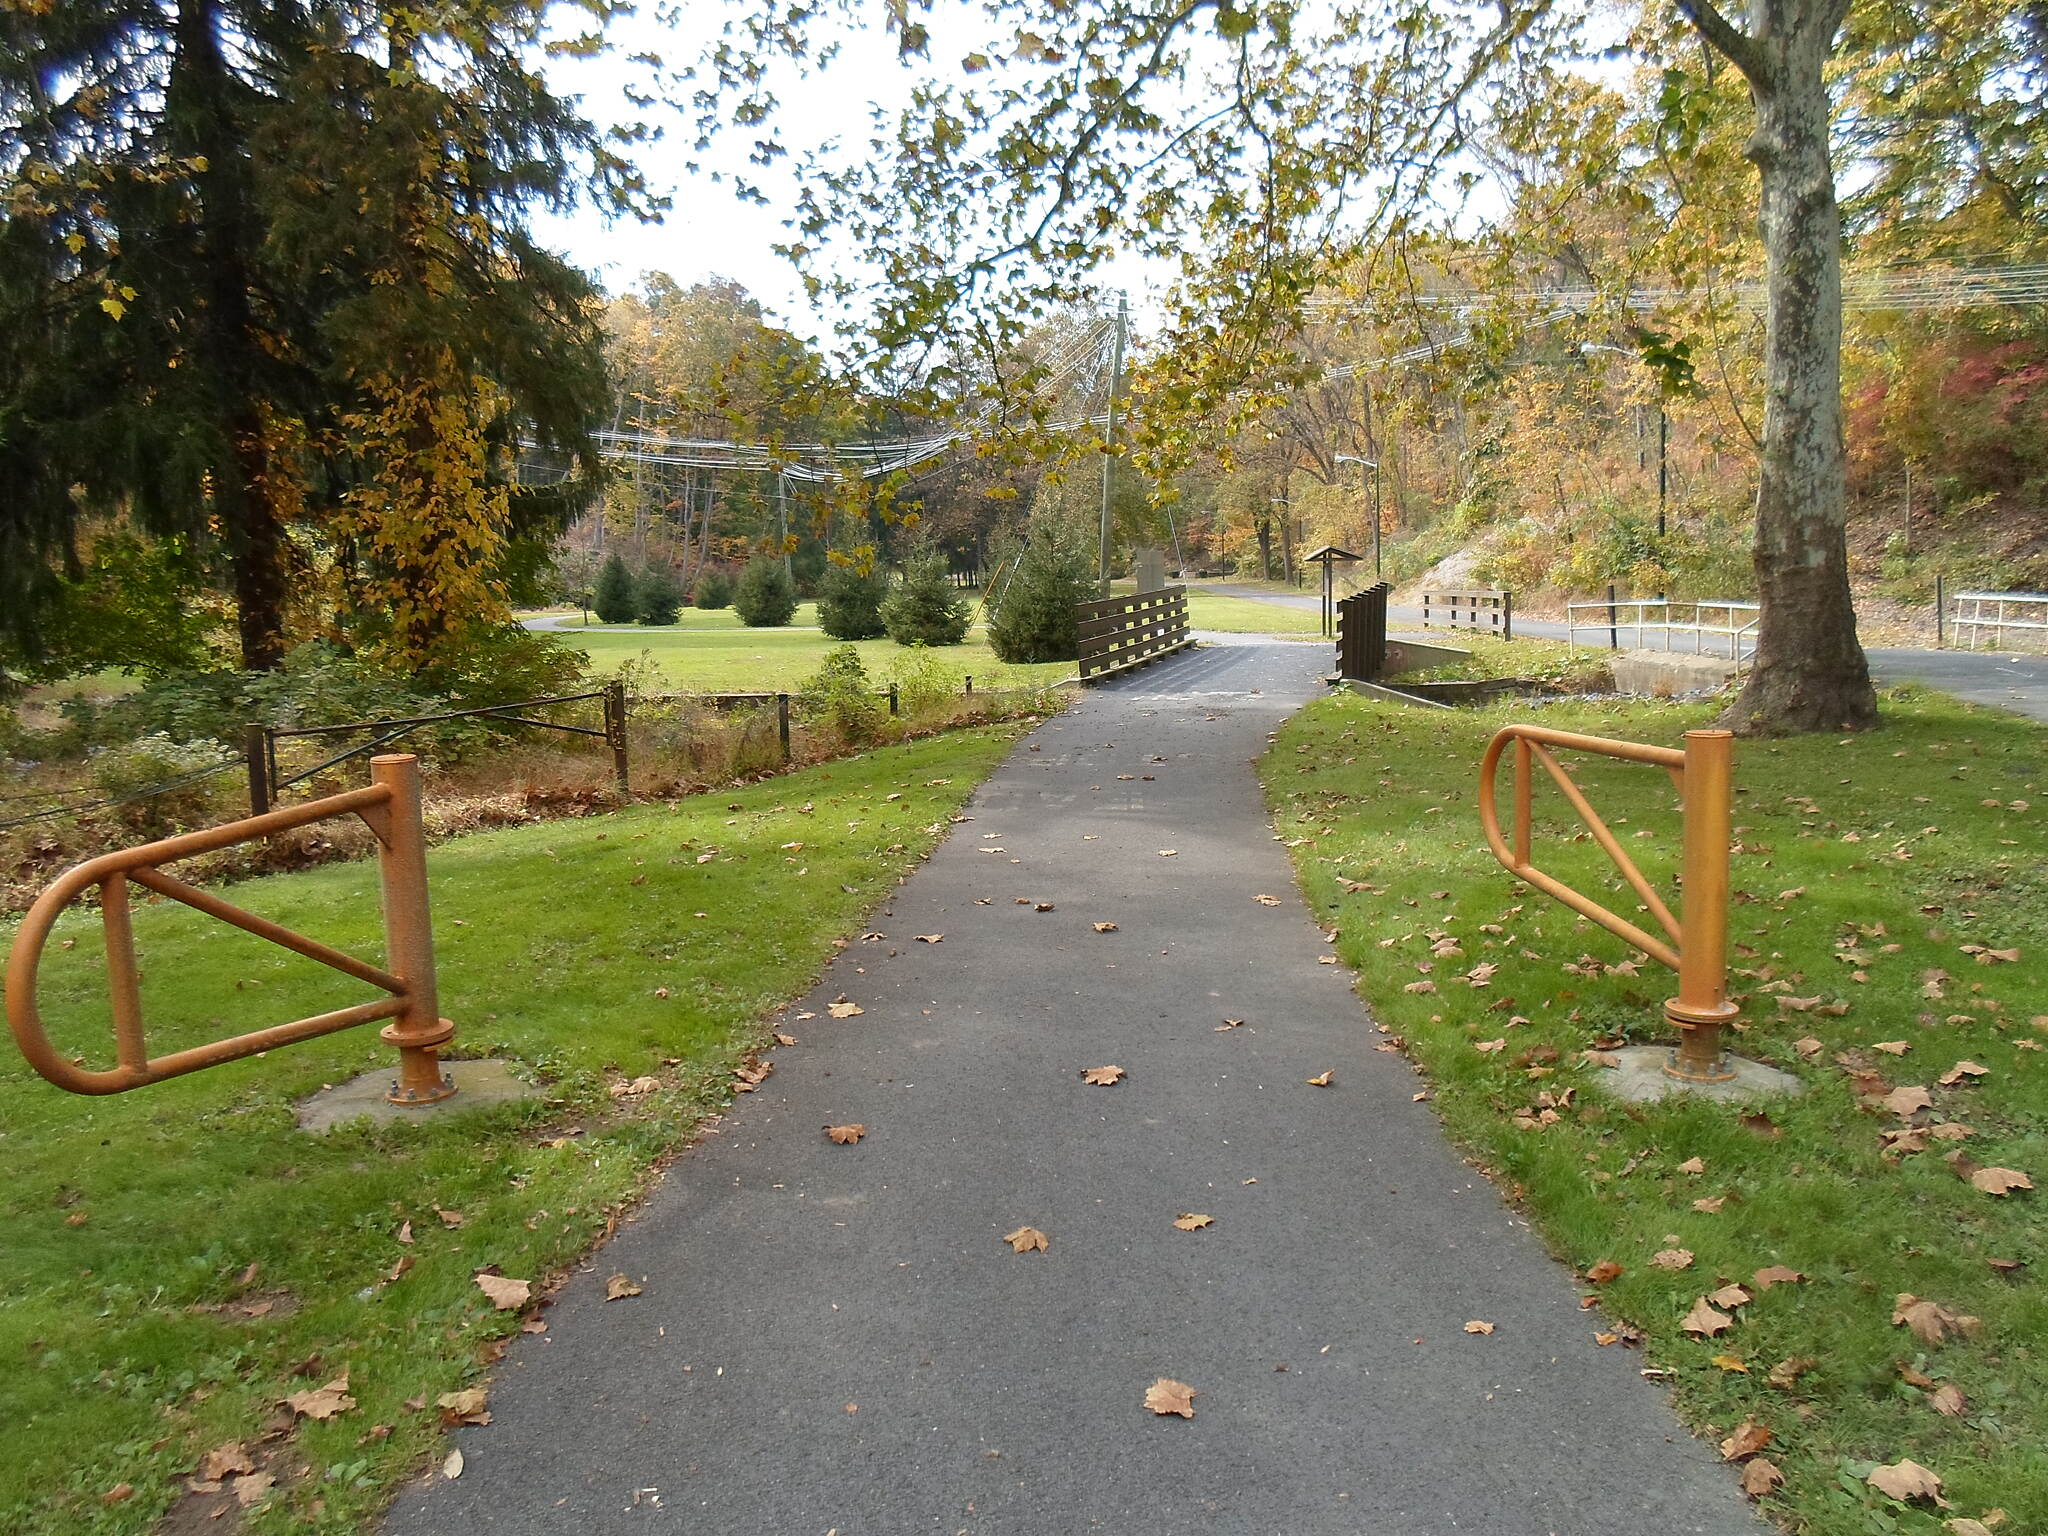 Capital Area Greenbelt Capital Area Greenbelt After paralleling Pine Drive down a steep hill, the trail takes another hard turn west at the junction with the Link Trail. It then goes west through an arboretum to the Farm Show Complex.